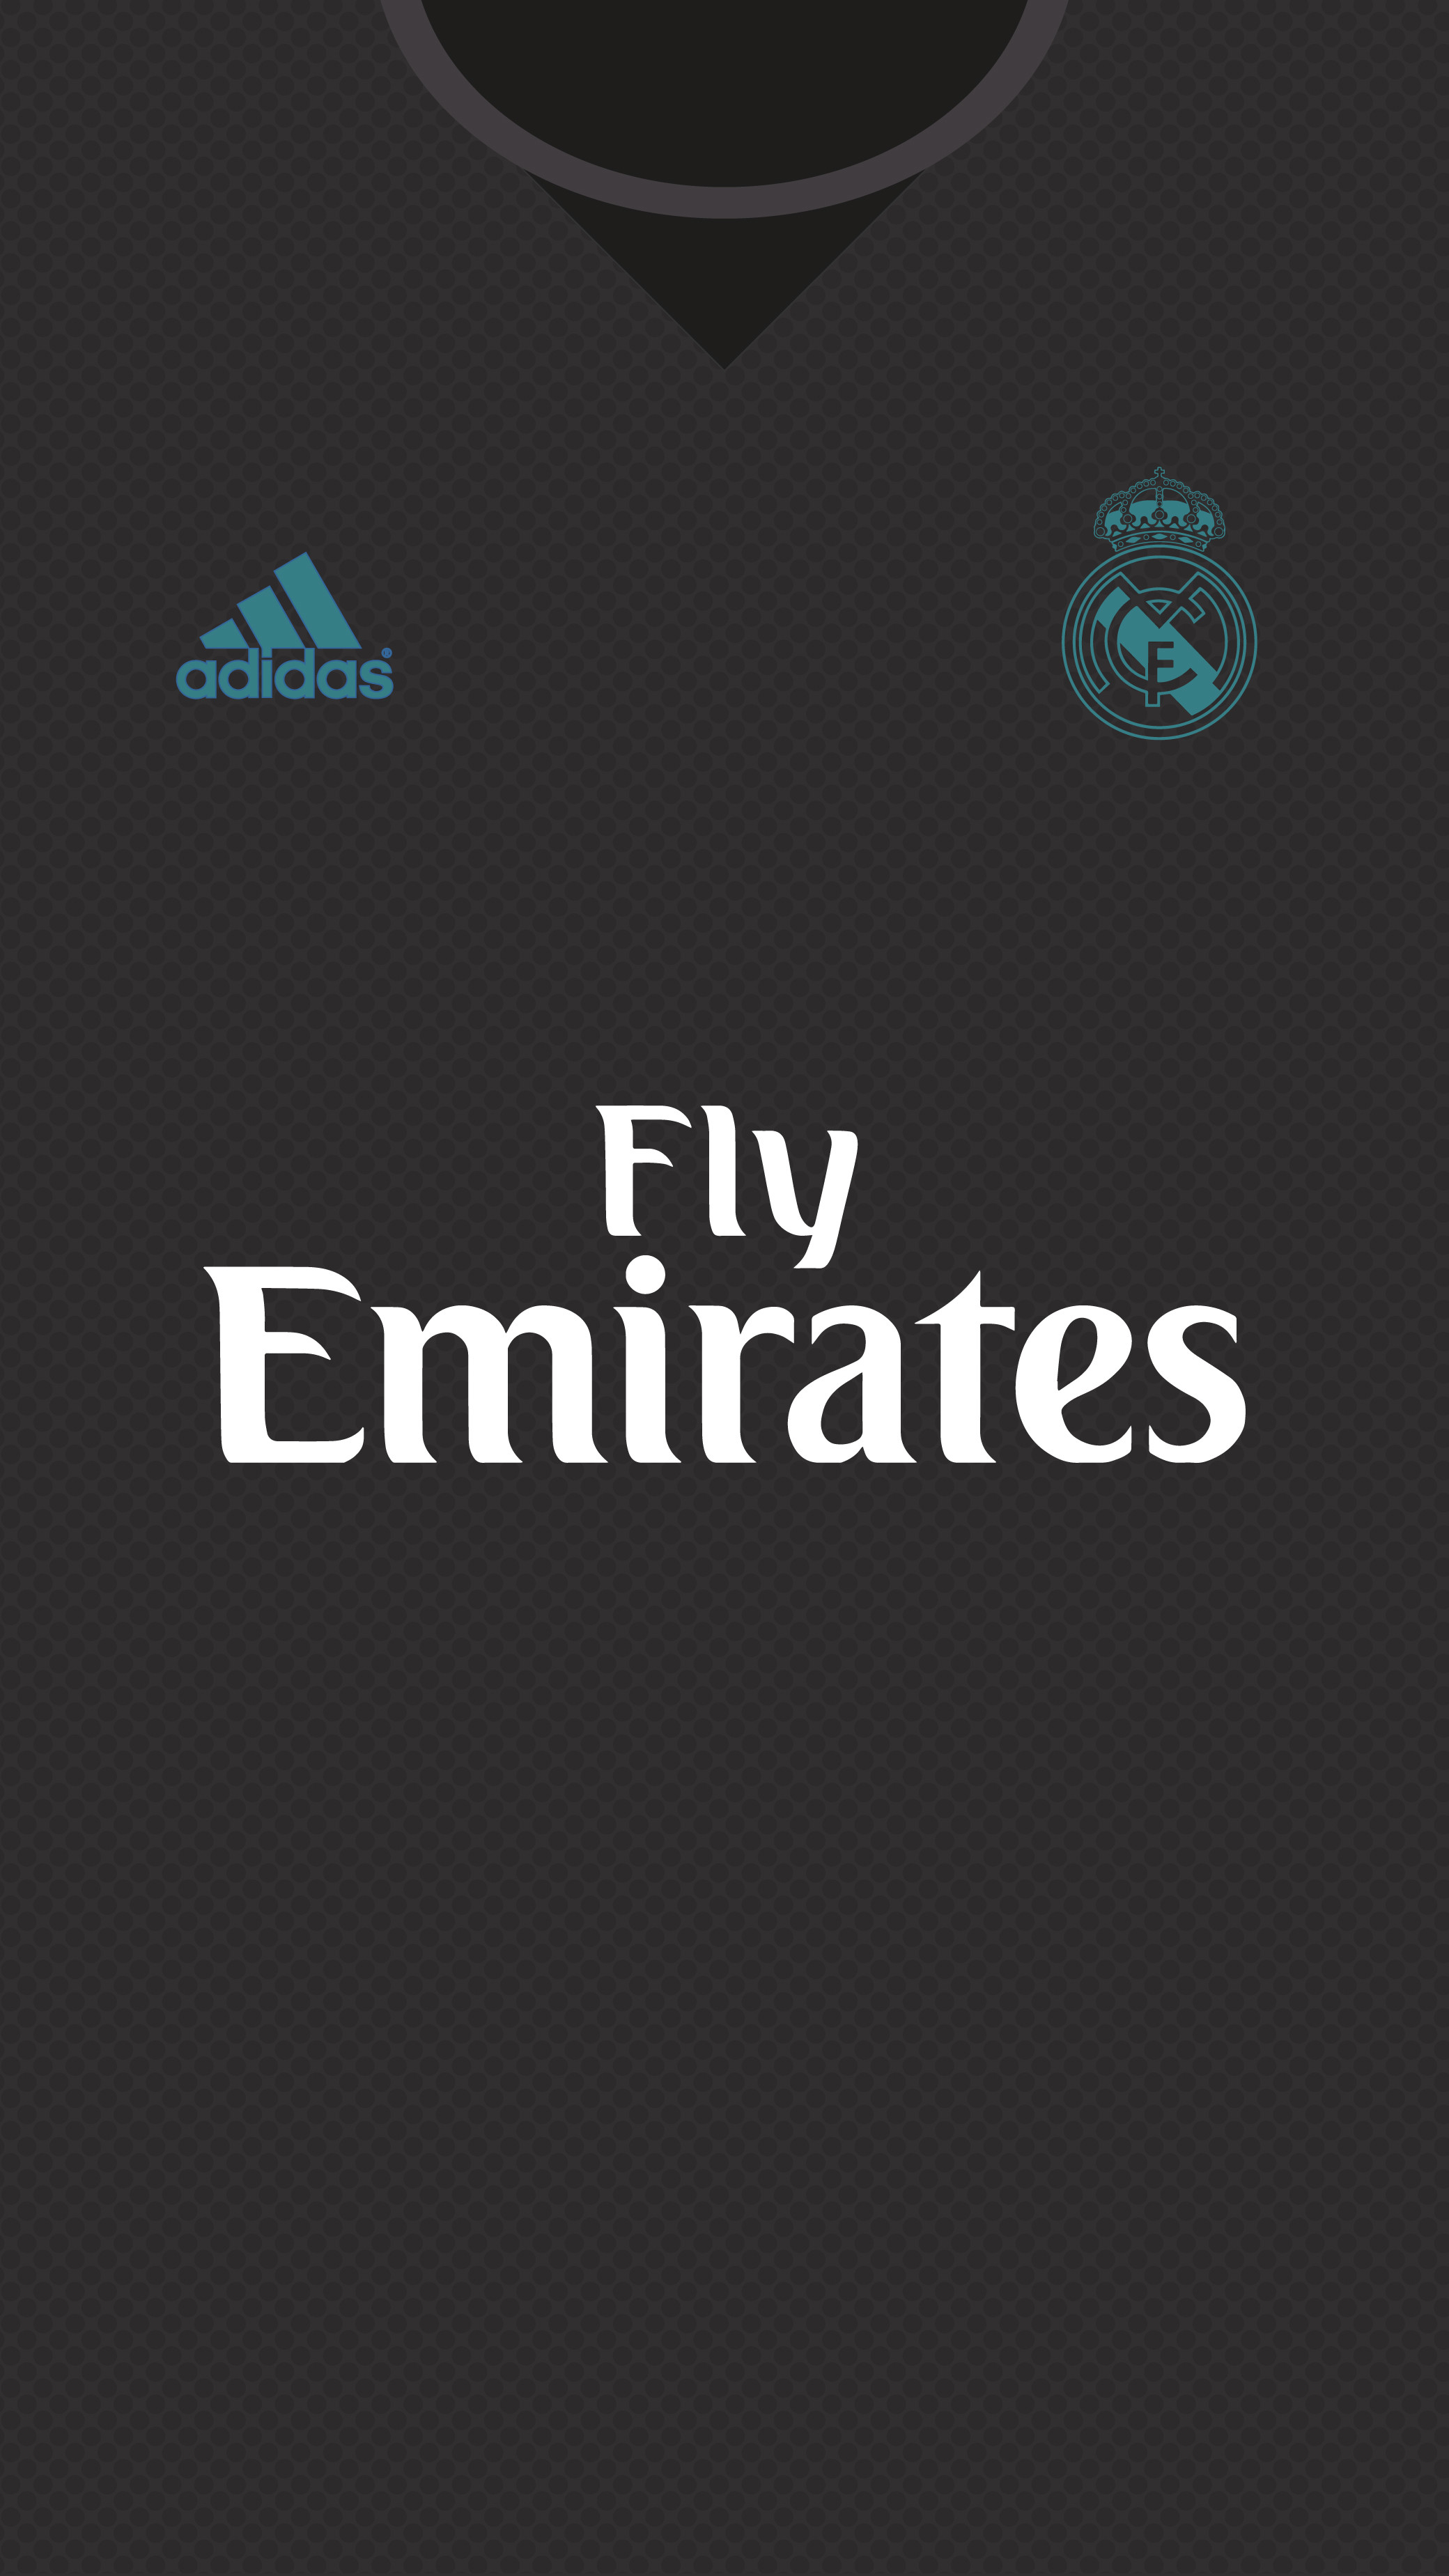 Real madrid wallpaper 75 images 2560x1440 tablet download 2300x1600 real madrid logo wallpaper voltagebd Image collections